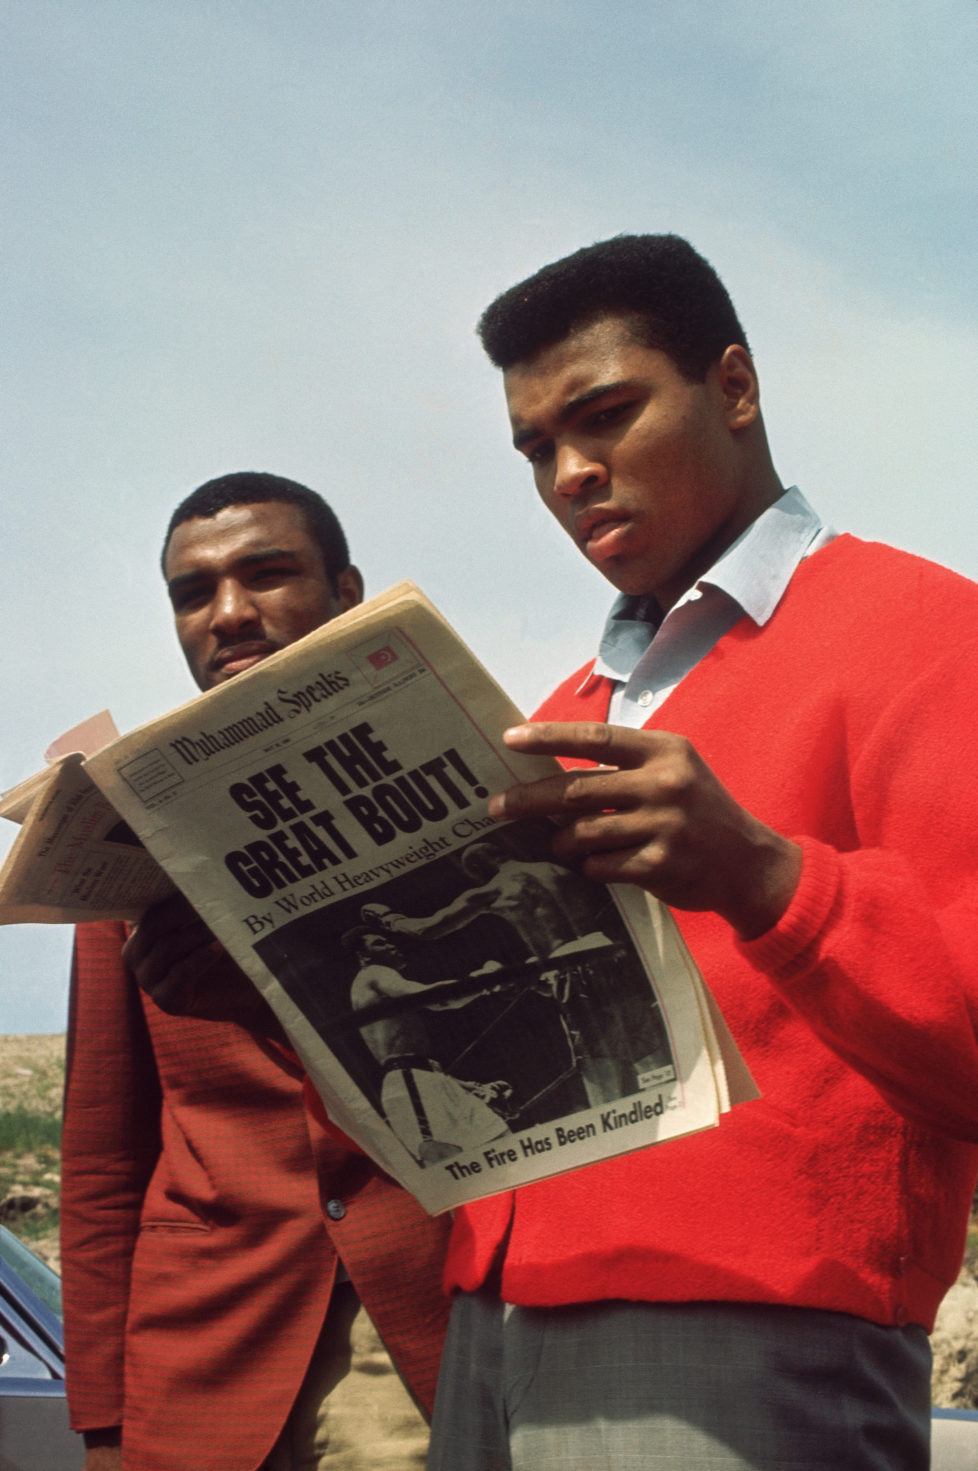 UNDATED: Muhammad Ali reads about his boxing match in the paper circa 1960's. (Photo by Focus on Sport/Getty Images)